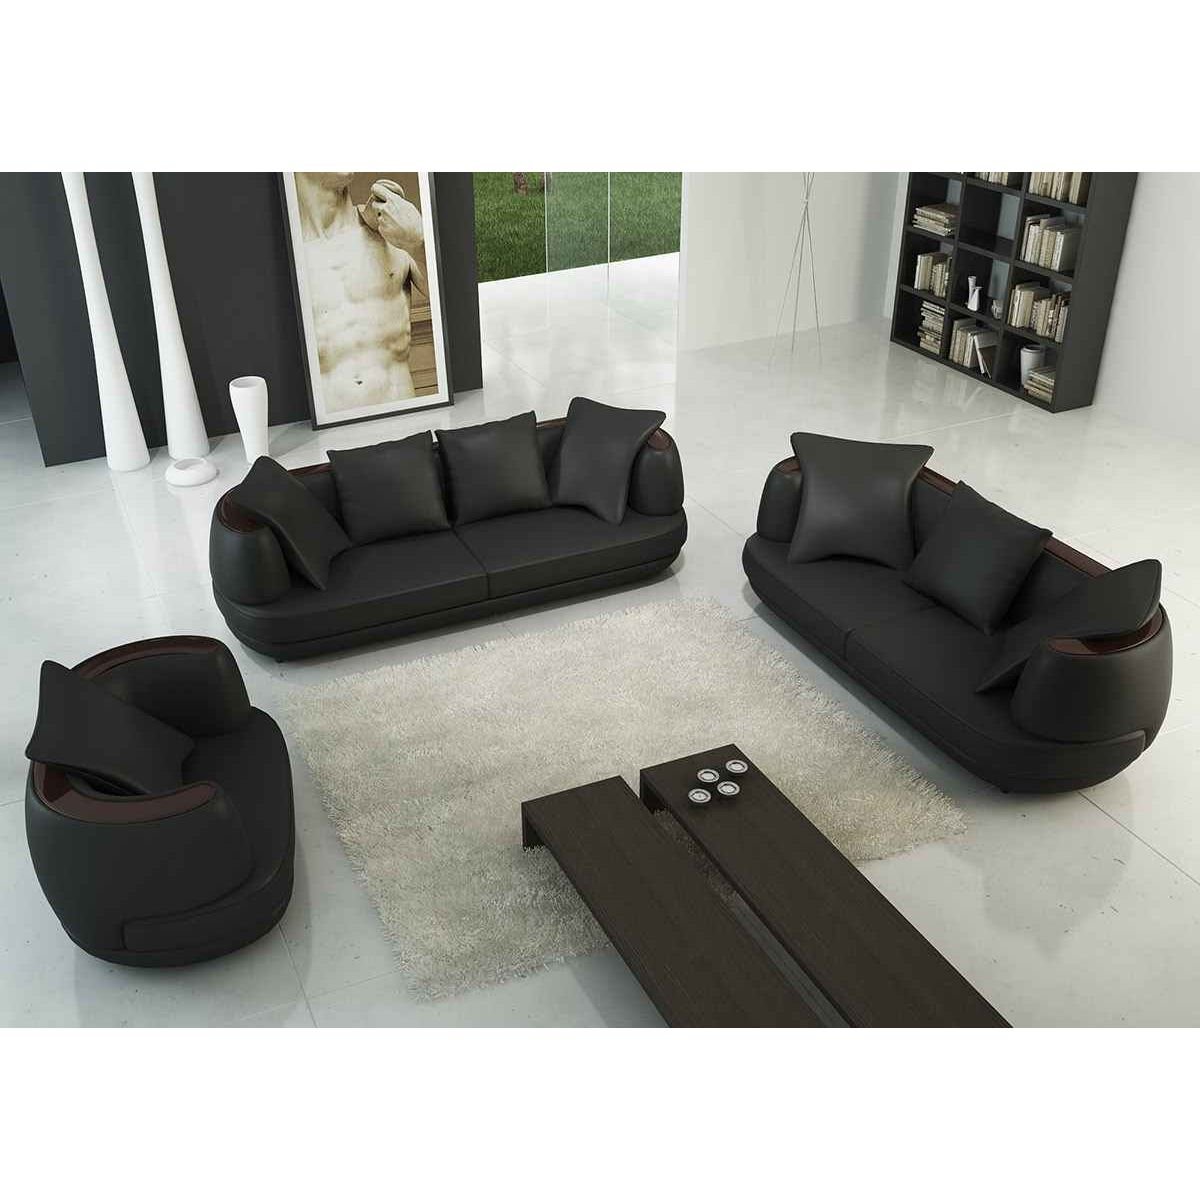 Deco in paris ensemble canape 3 2 1 places noir en cuir for Canape en cuir